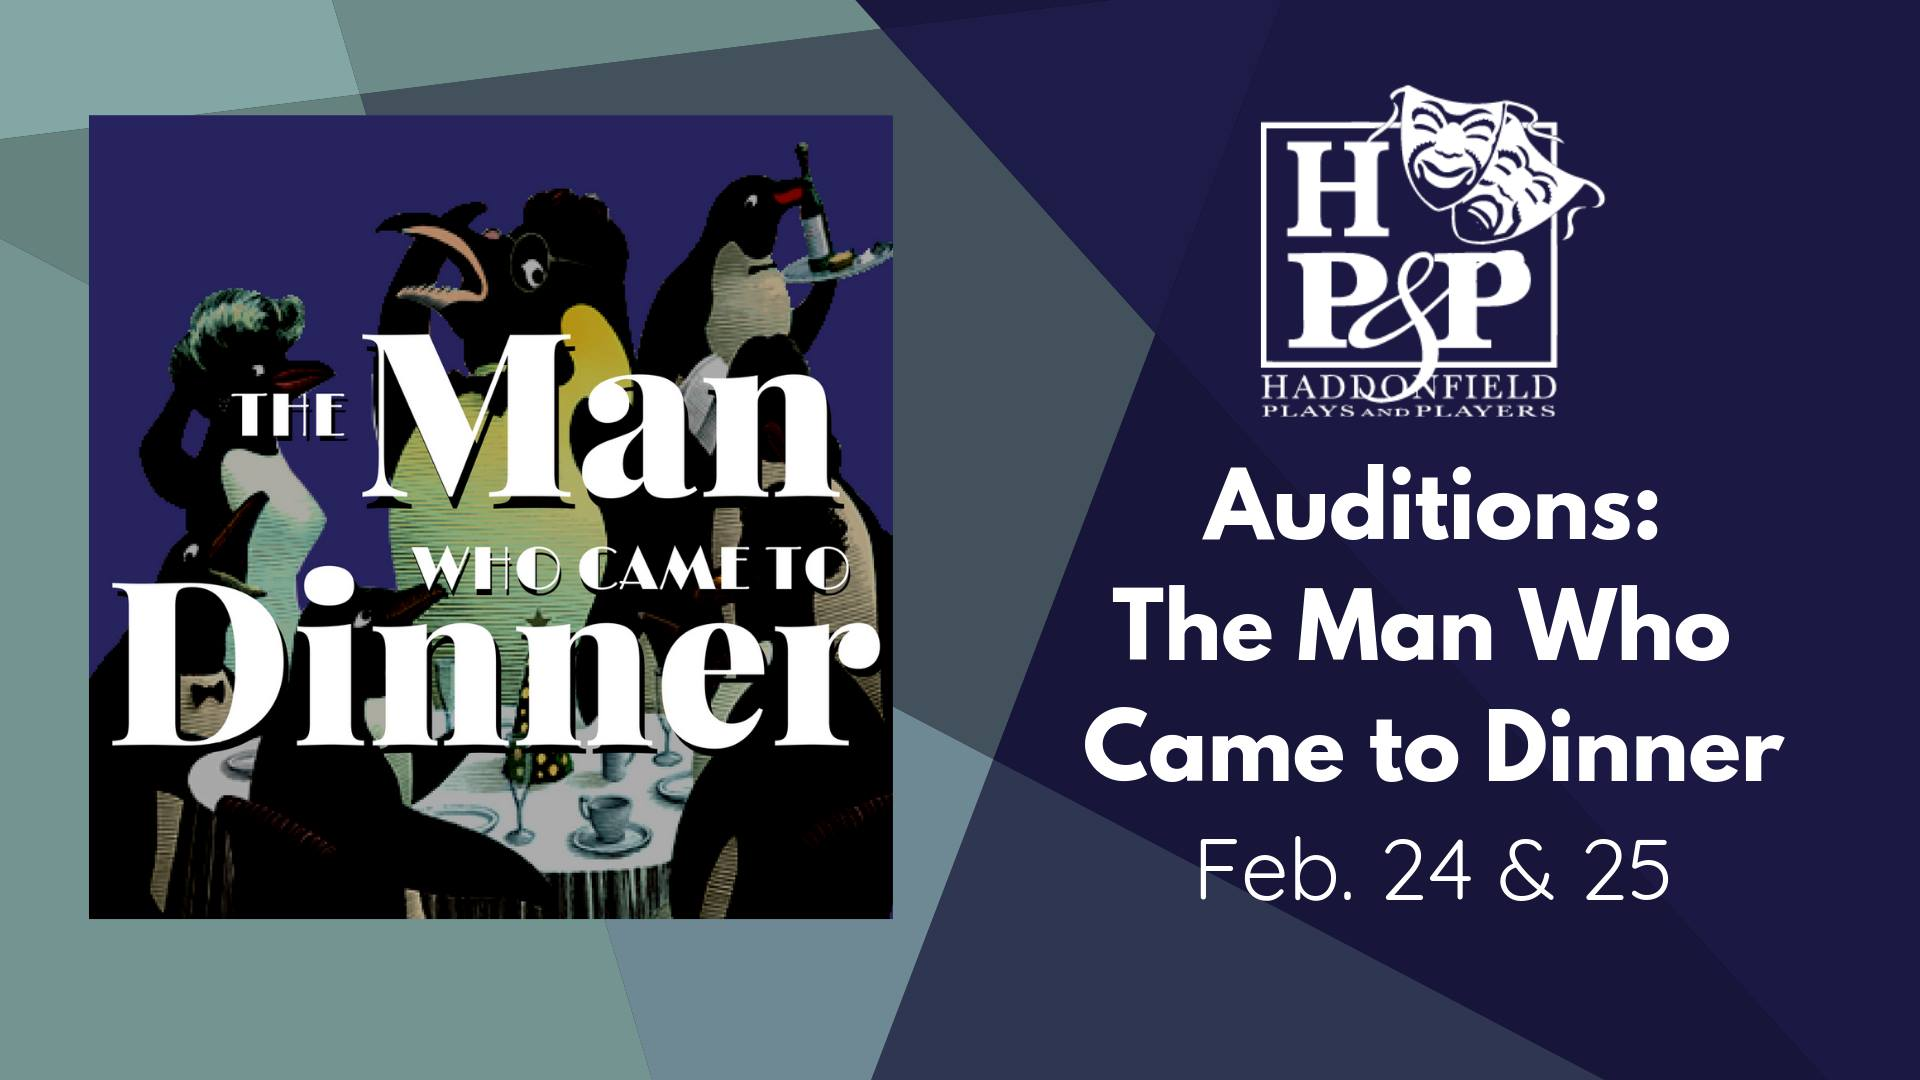 Consider, college amateur auditions